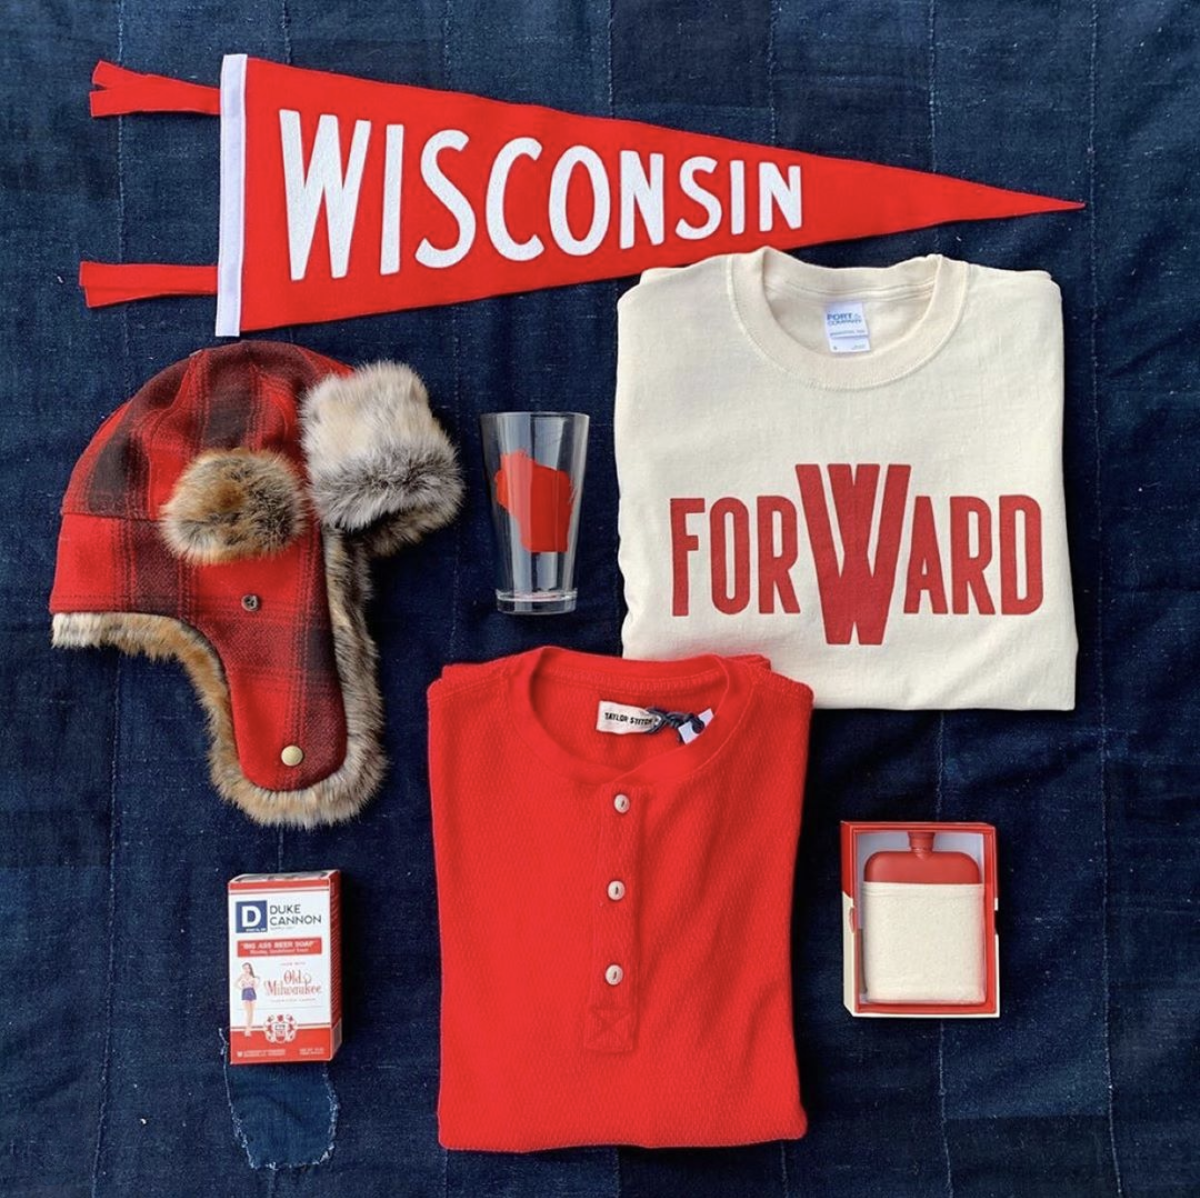 Wisconsin Pint Product Flatlay